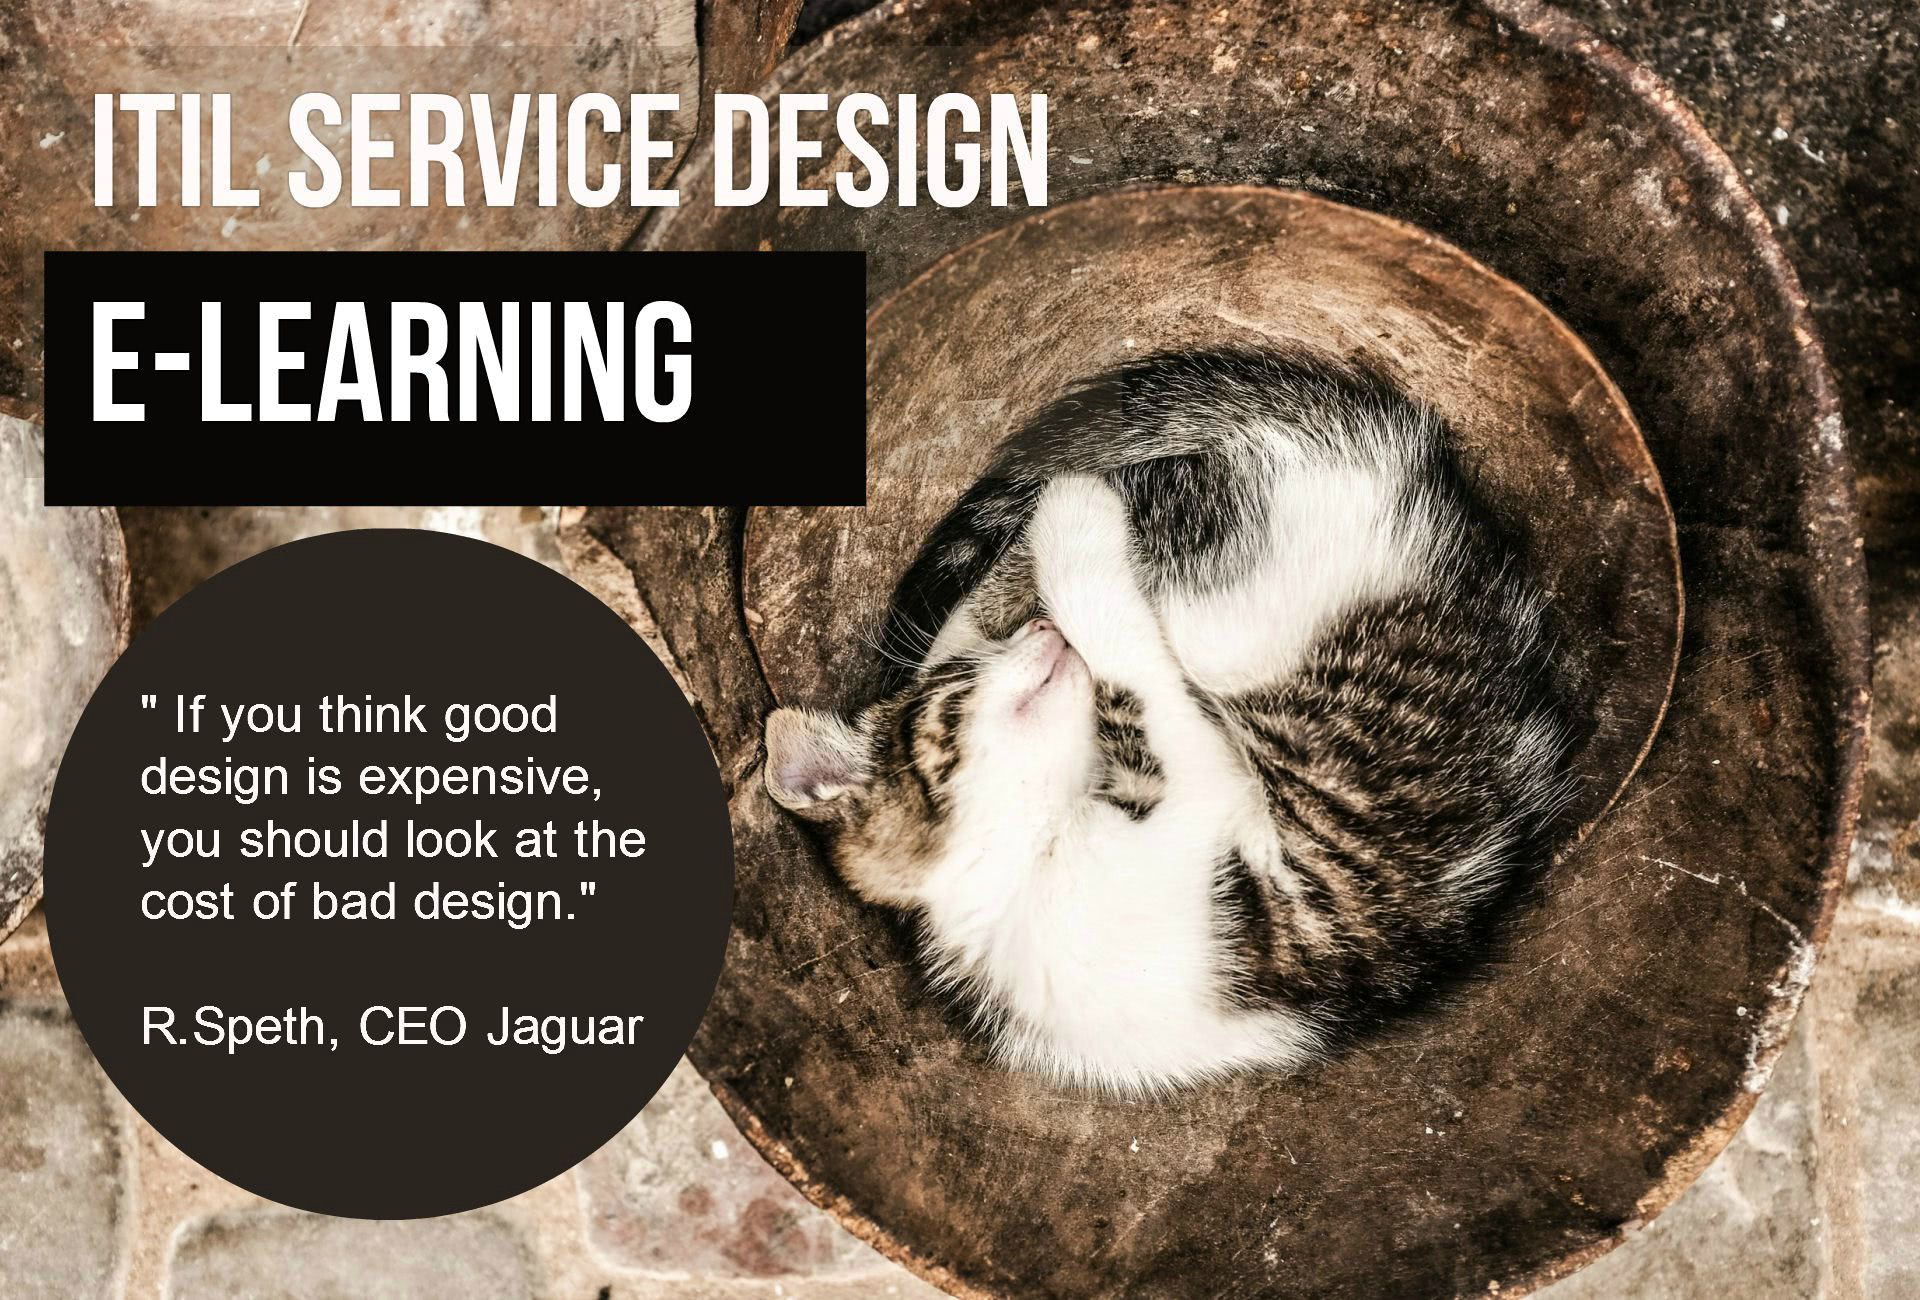 ITS Partner - ITIL Service design e-learning and certification